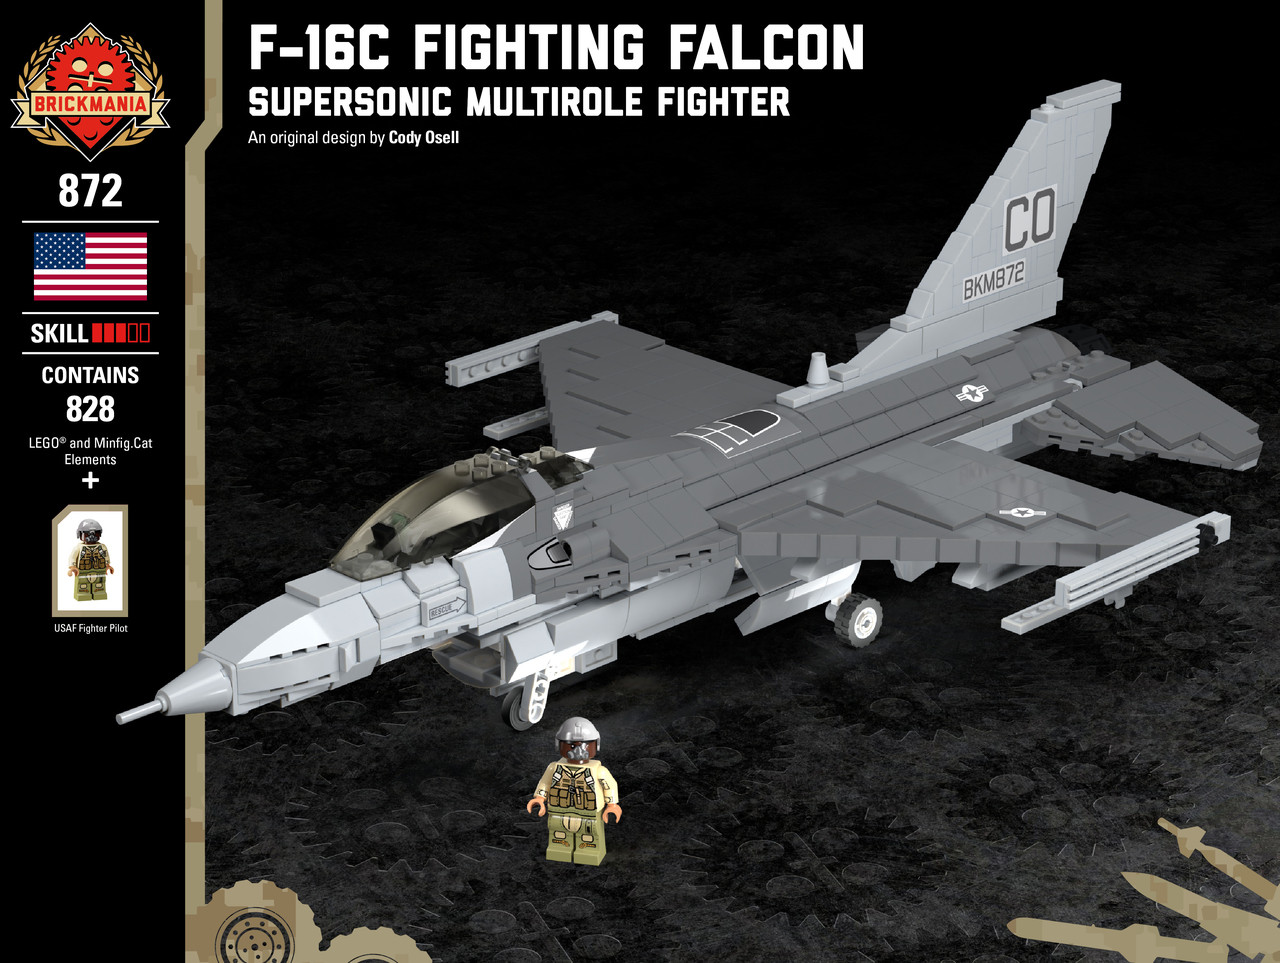 F 16C Fighting Falcon   Supersonic Multirole Fighter   Brickmania Toys F 16C Fighting Falcon   Supersonic Multirole Fighter